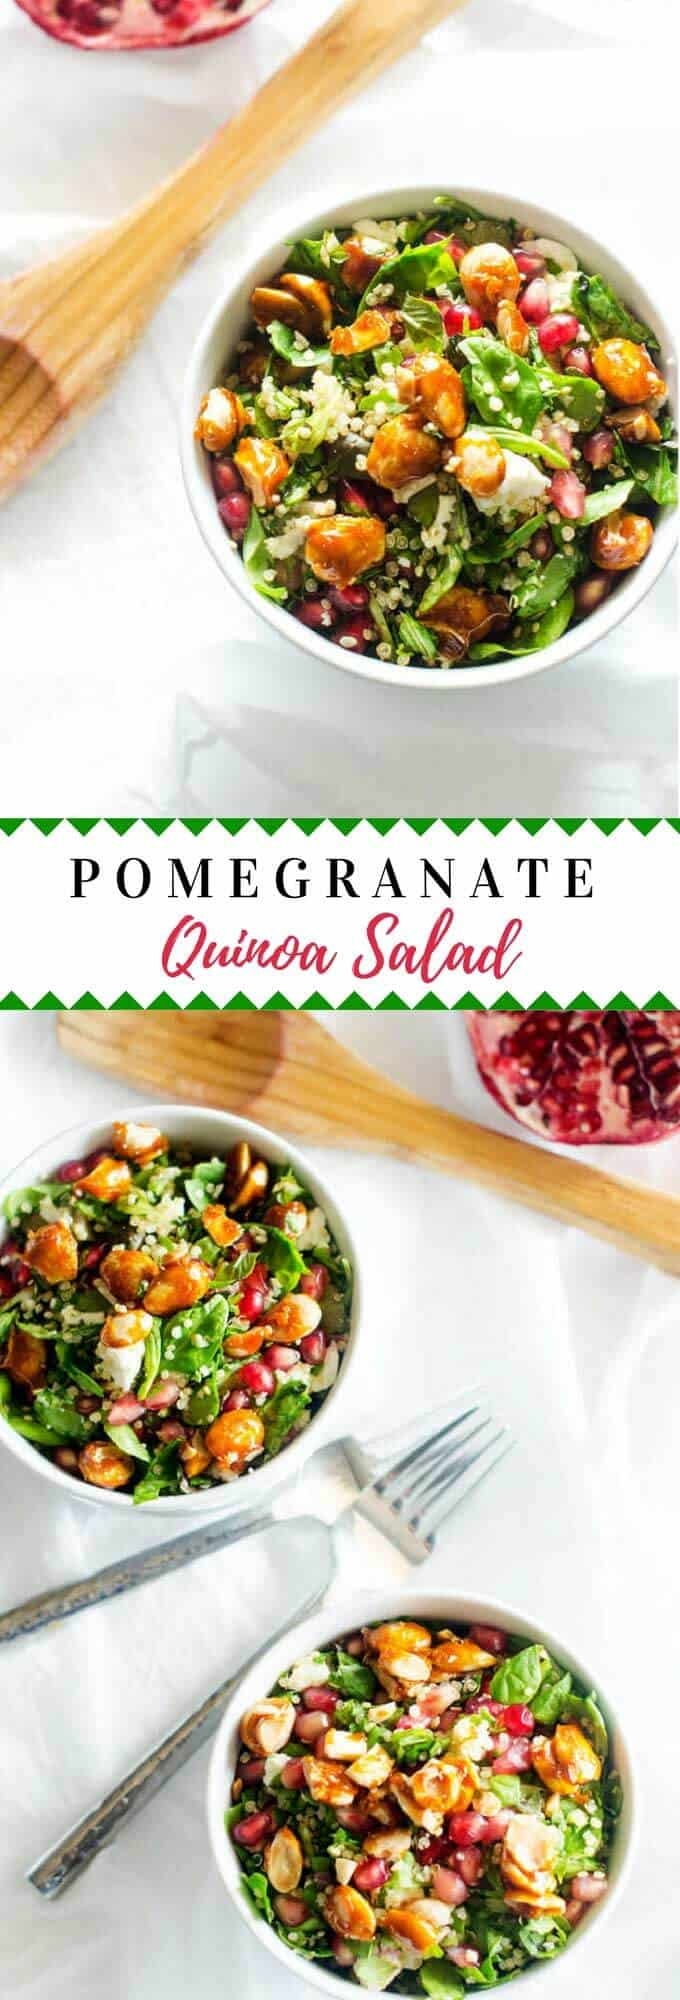 This healthy Pomegranate Quinoa Salad with Goat Cheese is one of those recipes you will make over and over!  It is naturally gluten free and easily made vegan. #quinoa #quinoasalad